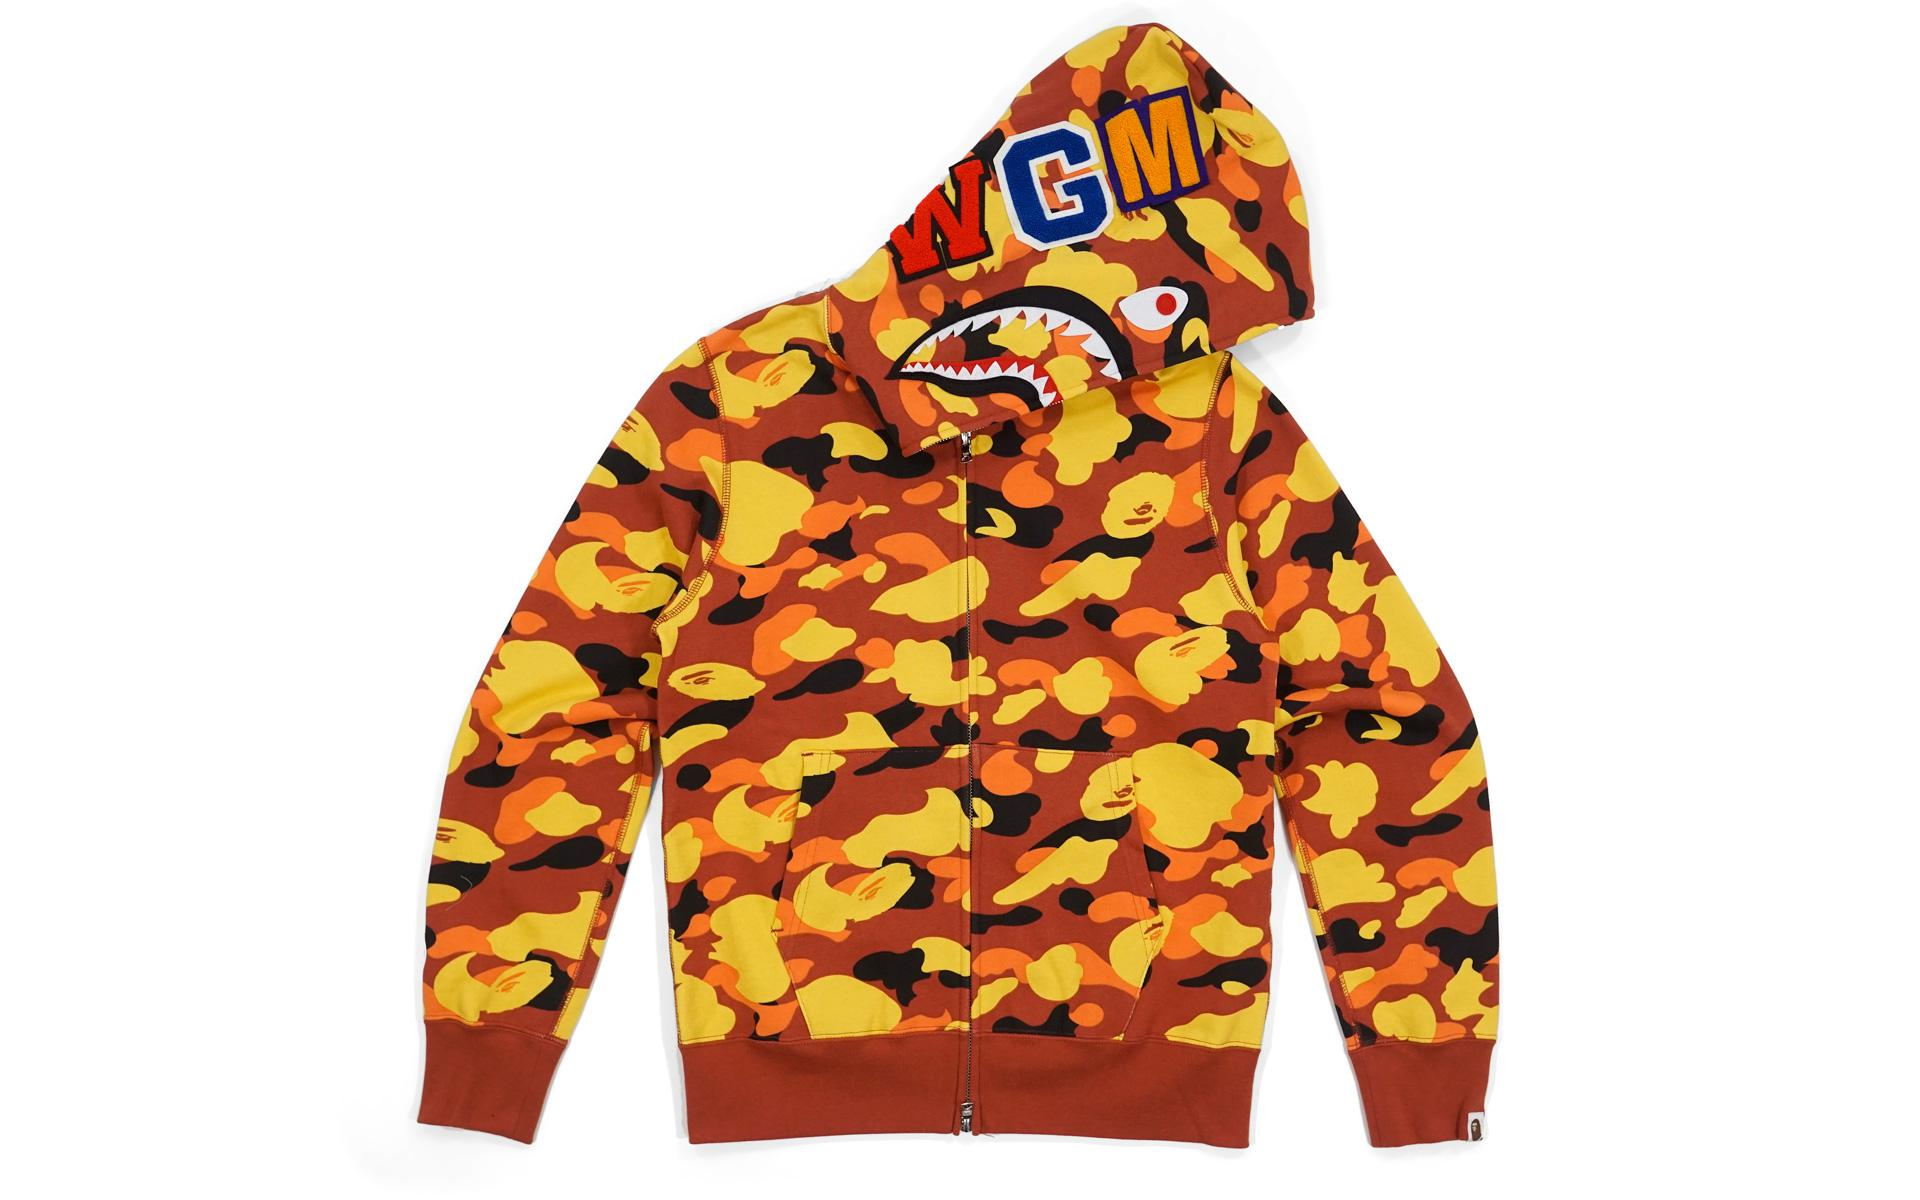 fa991aa8047b Lyst - A Bathing Ape Ultimate 1st Camo Wgm Wappen Shark Orange in ...